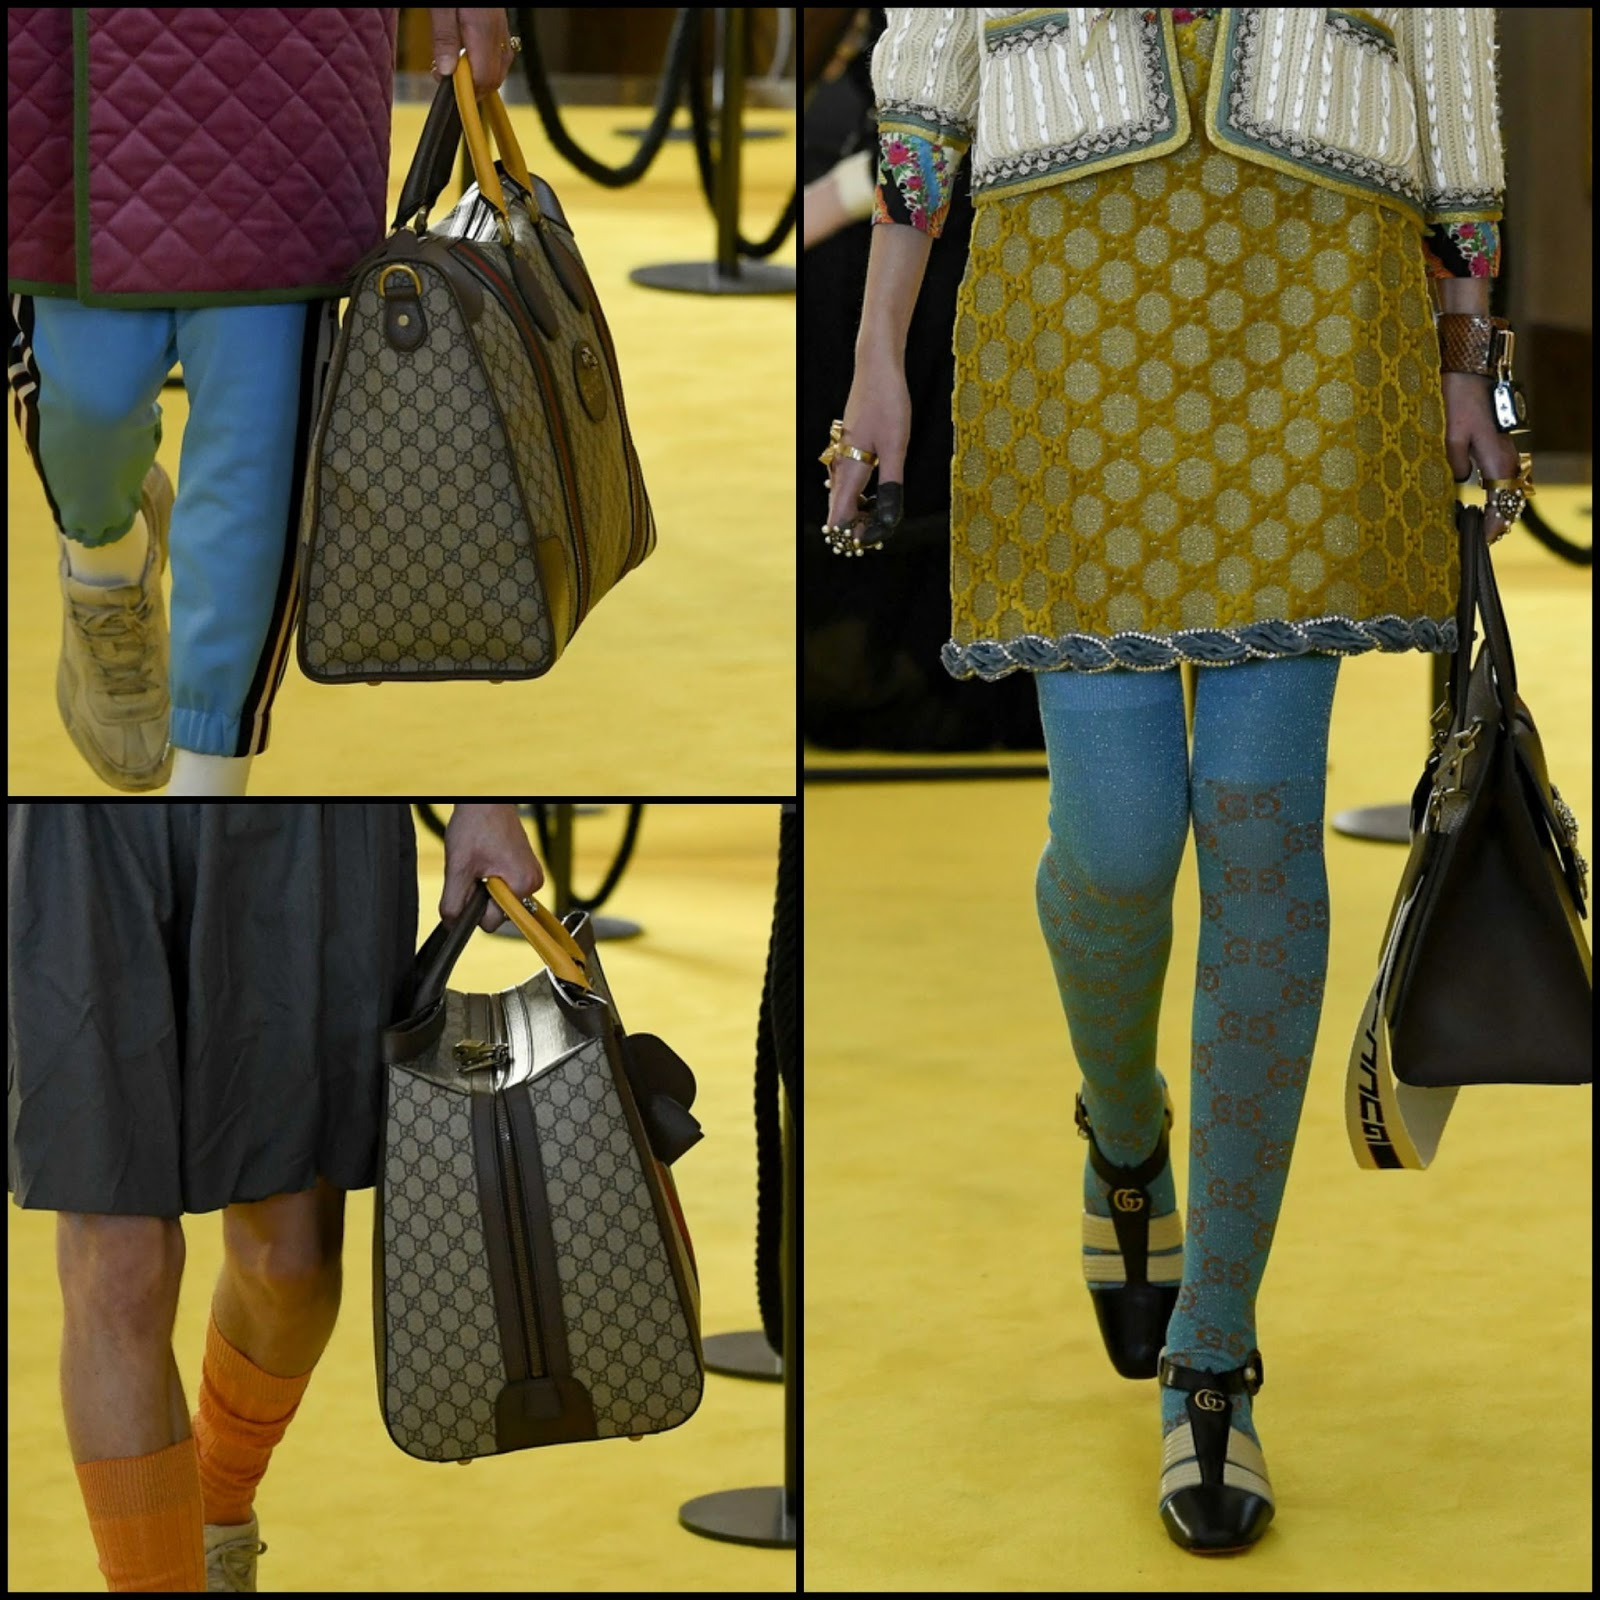 325f977e7 GG Love: Gucci-brnaded maxi tote bags, stockings, dresses--Gucci Resort 2018